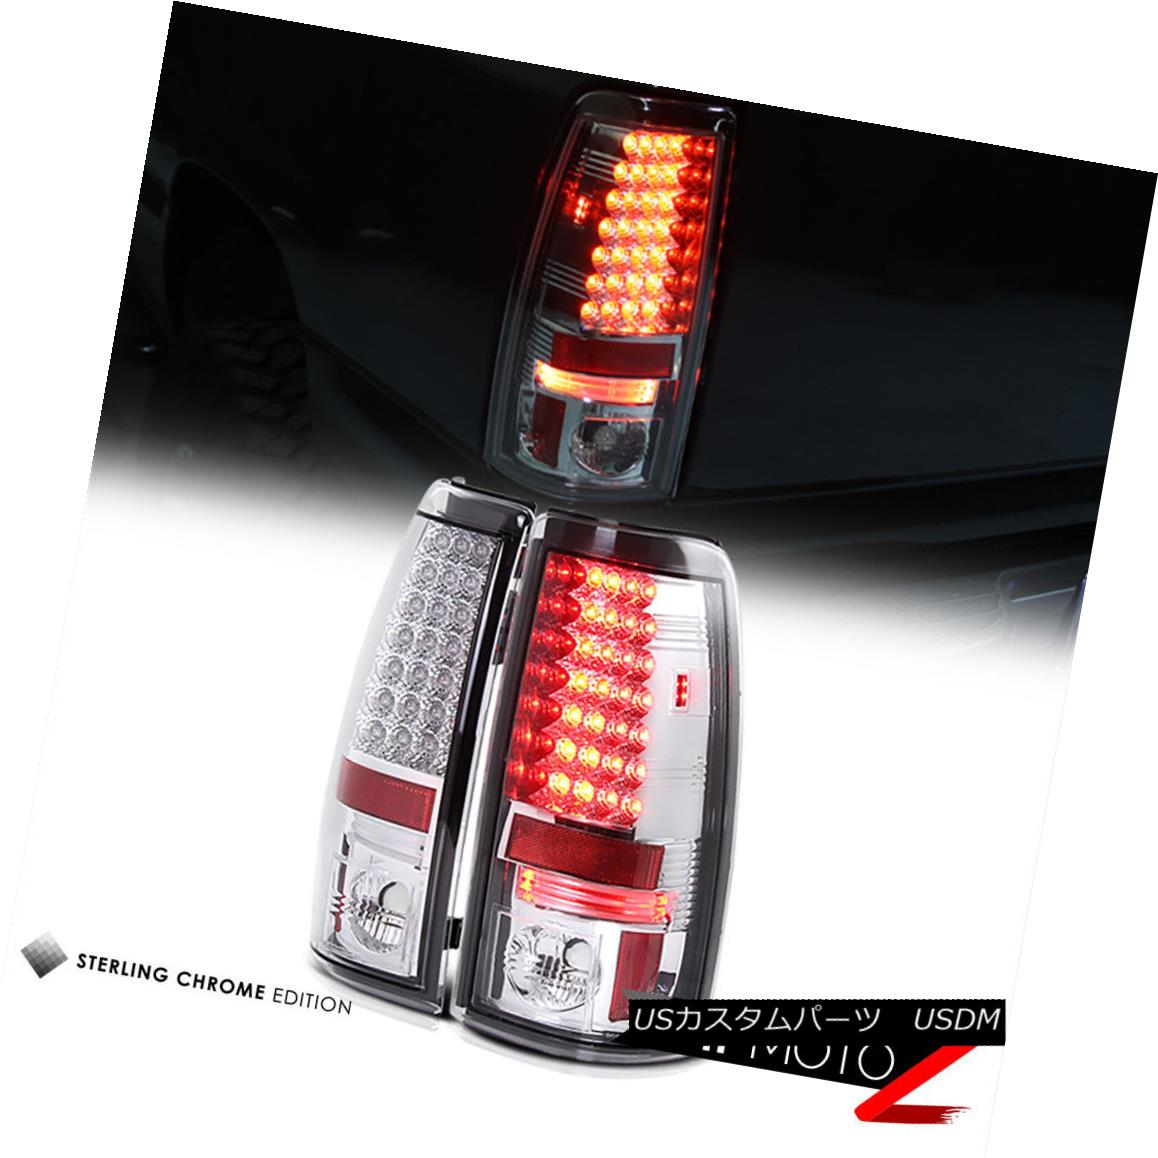 テールライト 2003-2006 Chevy Silverado [EURO CHROME] LED Rear Tail Light PLUG&PLAY ERROR FREE 2003-2006 Chevy Silverado [EURO CHROME] LEDリアテールライトPLUG&PLAY ERROR FREE